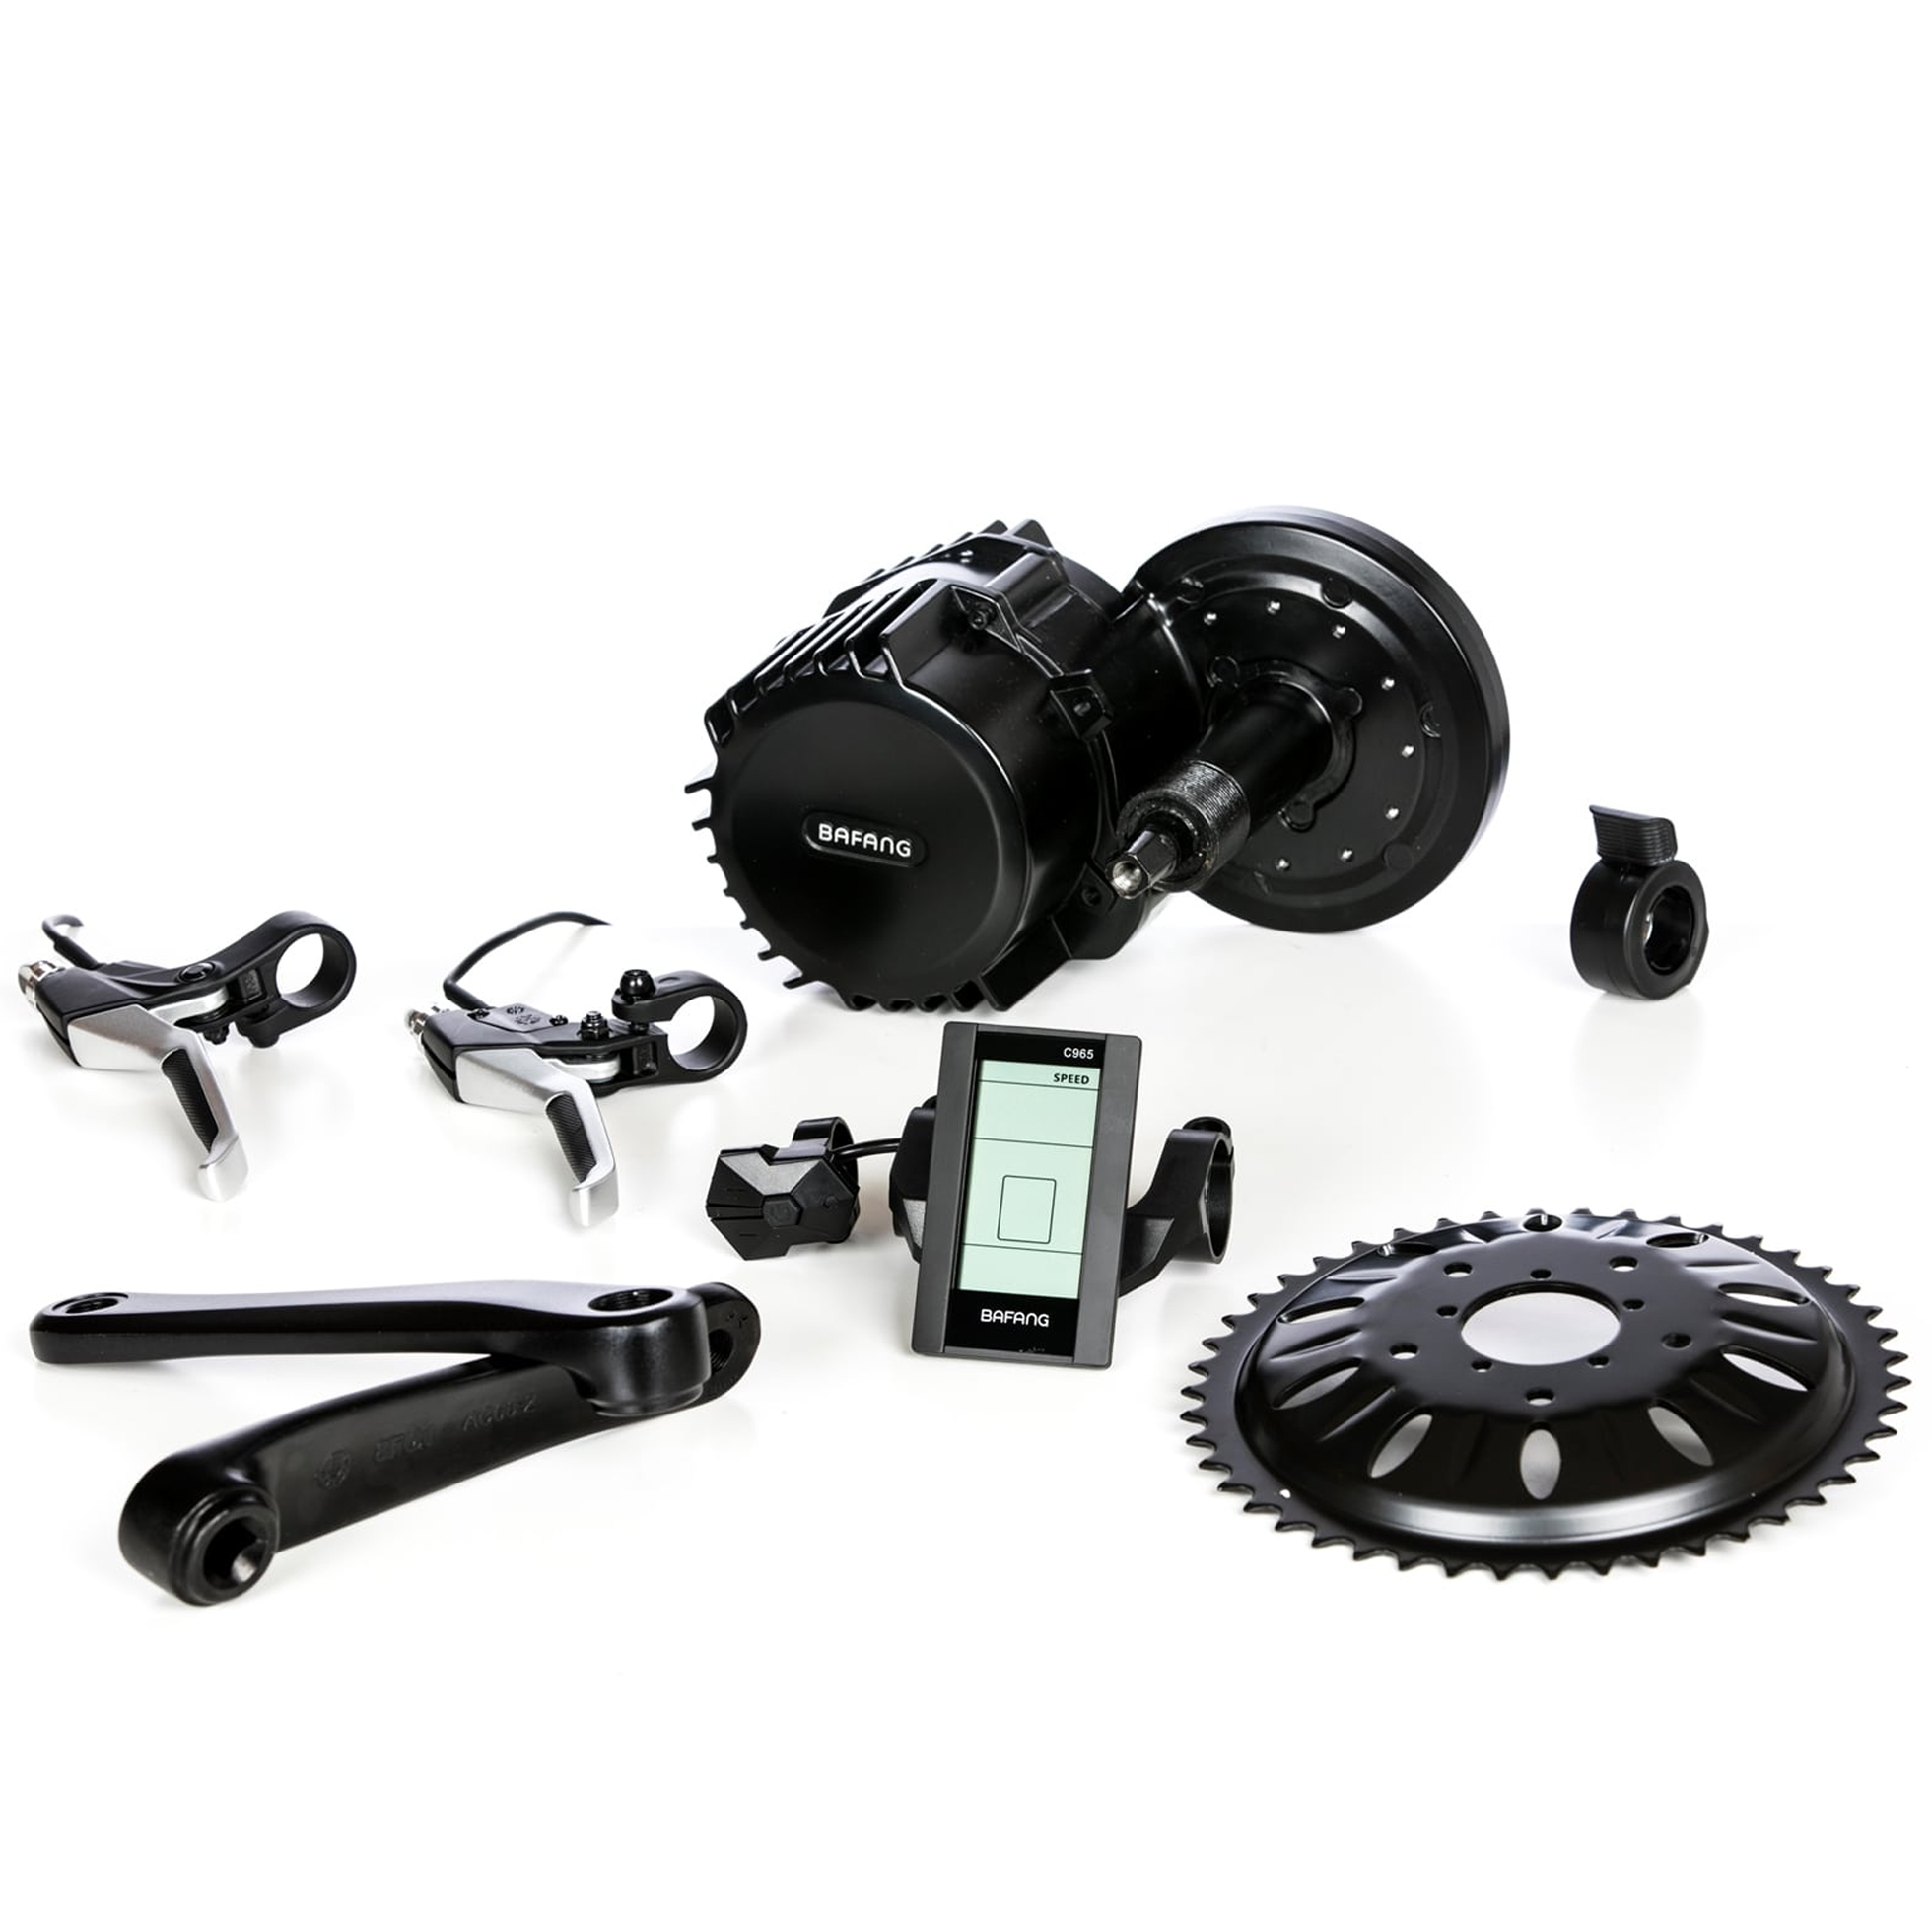 Electric Trike Conversion Kit, Electric Conversion Kit, 1000w, 750w